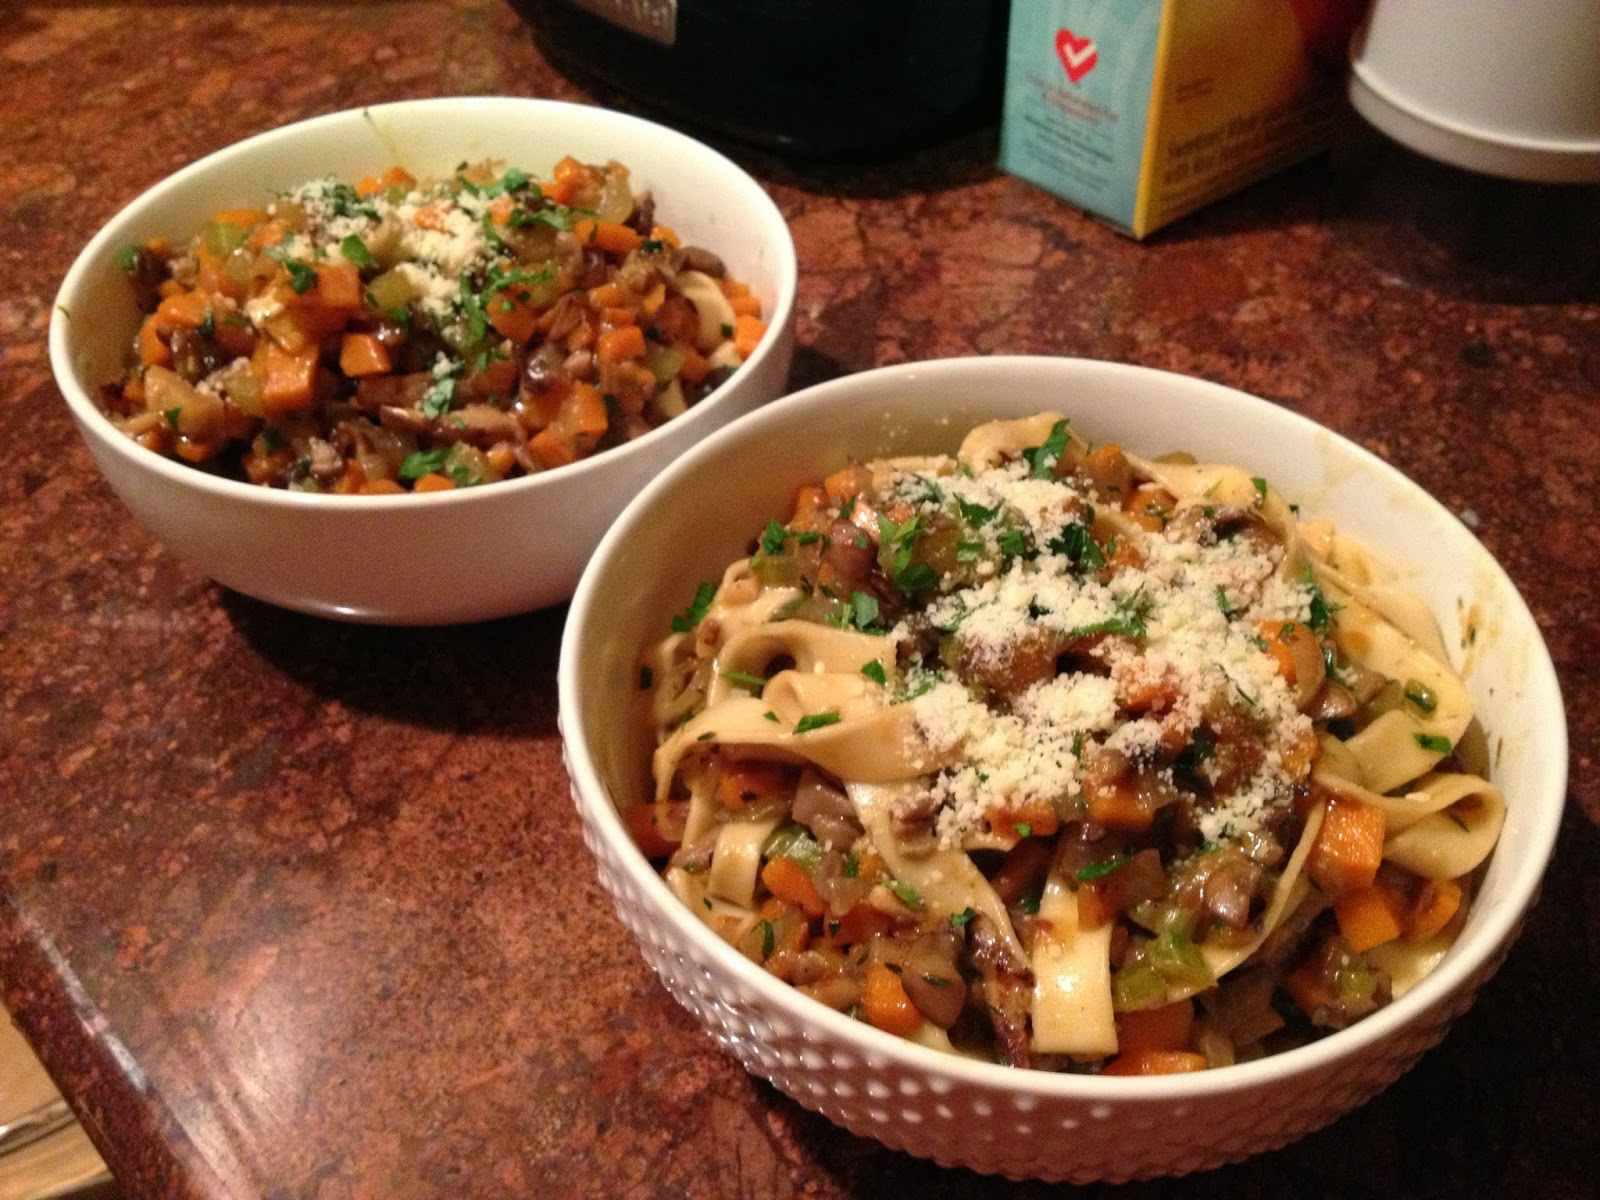 Blue apron vegetarian - Fetucelle With Wild Mushroom Bolognese So Good I Ate Way More Than I Should Have I Was Full For Days Lol I Love How They Give Us Fresh Pasta For Any